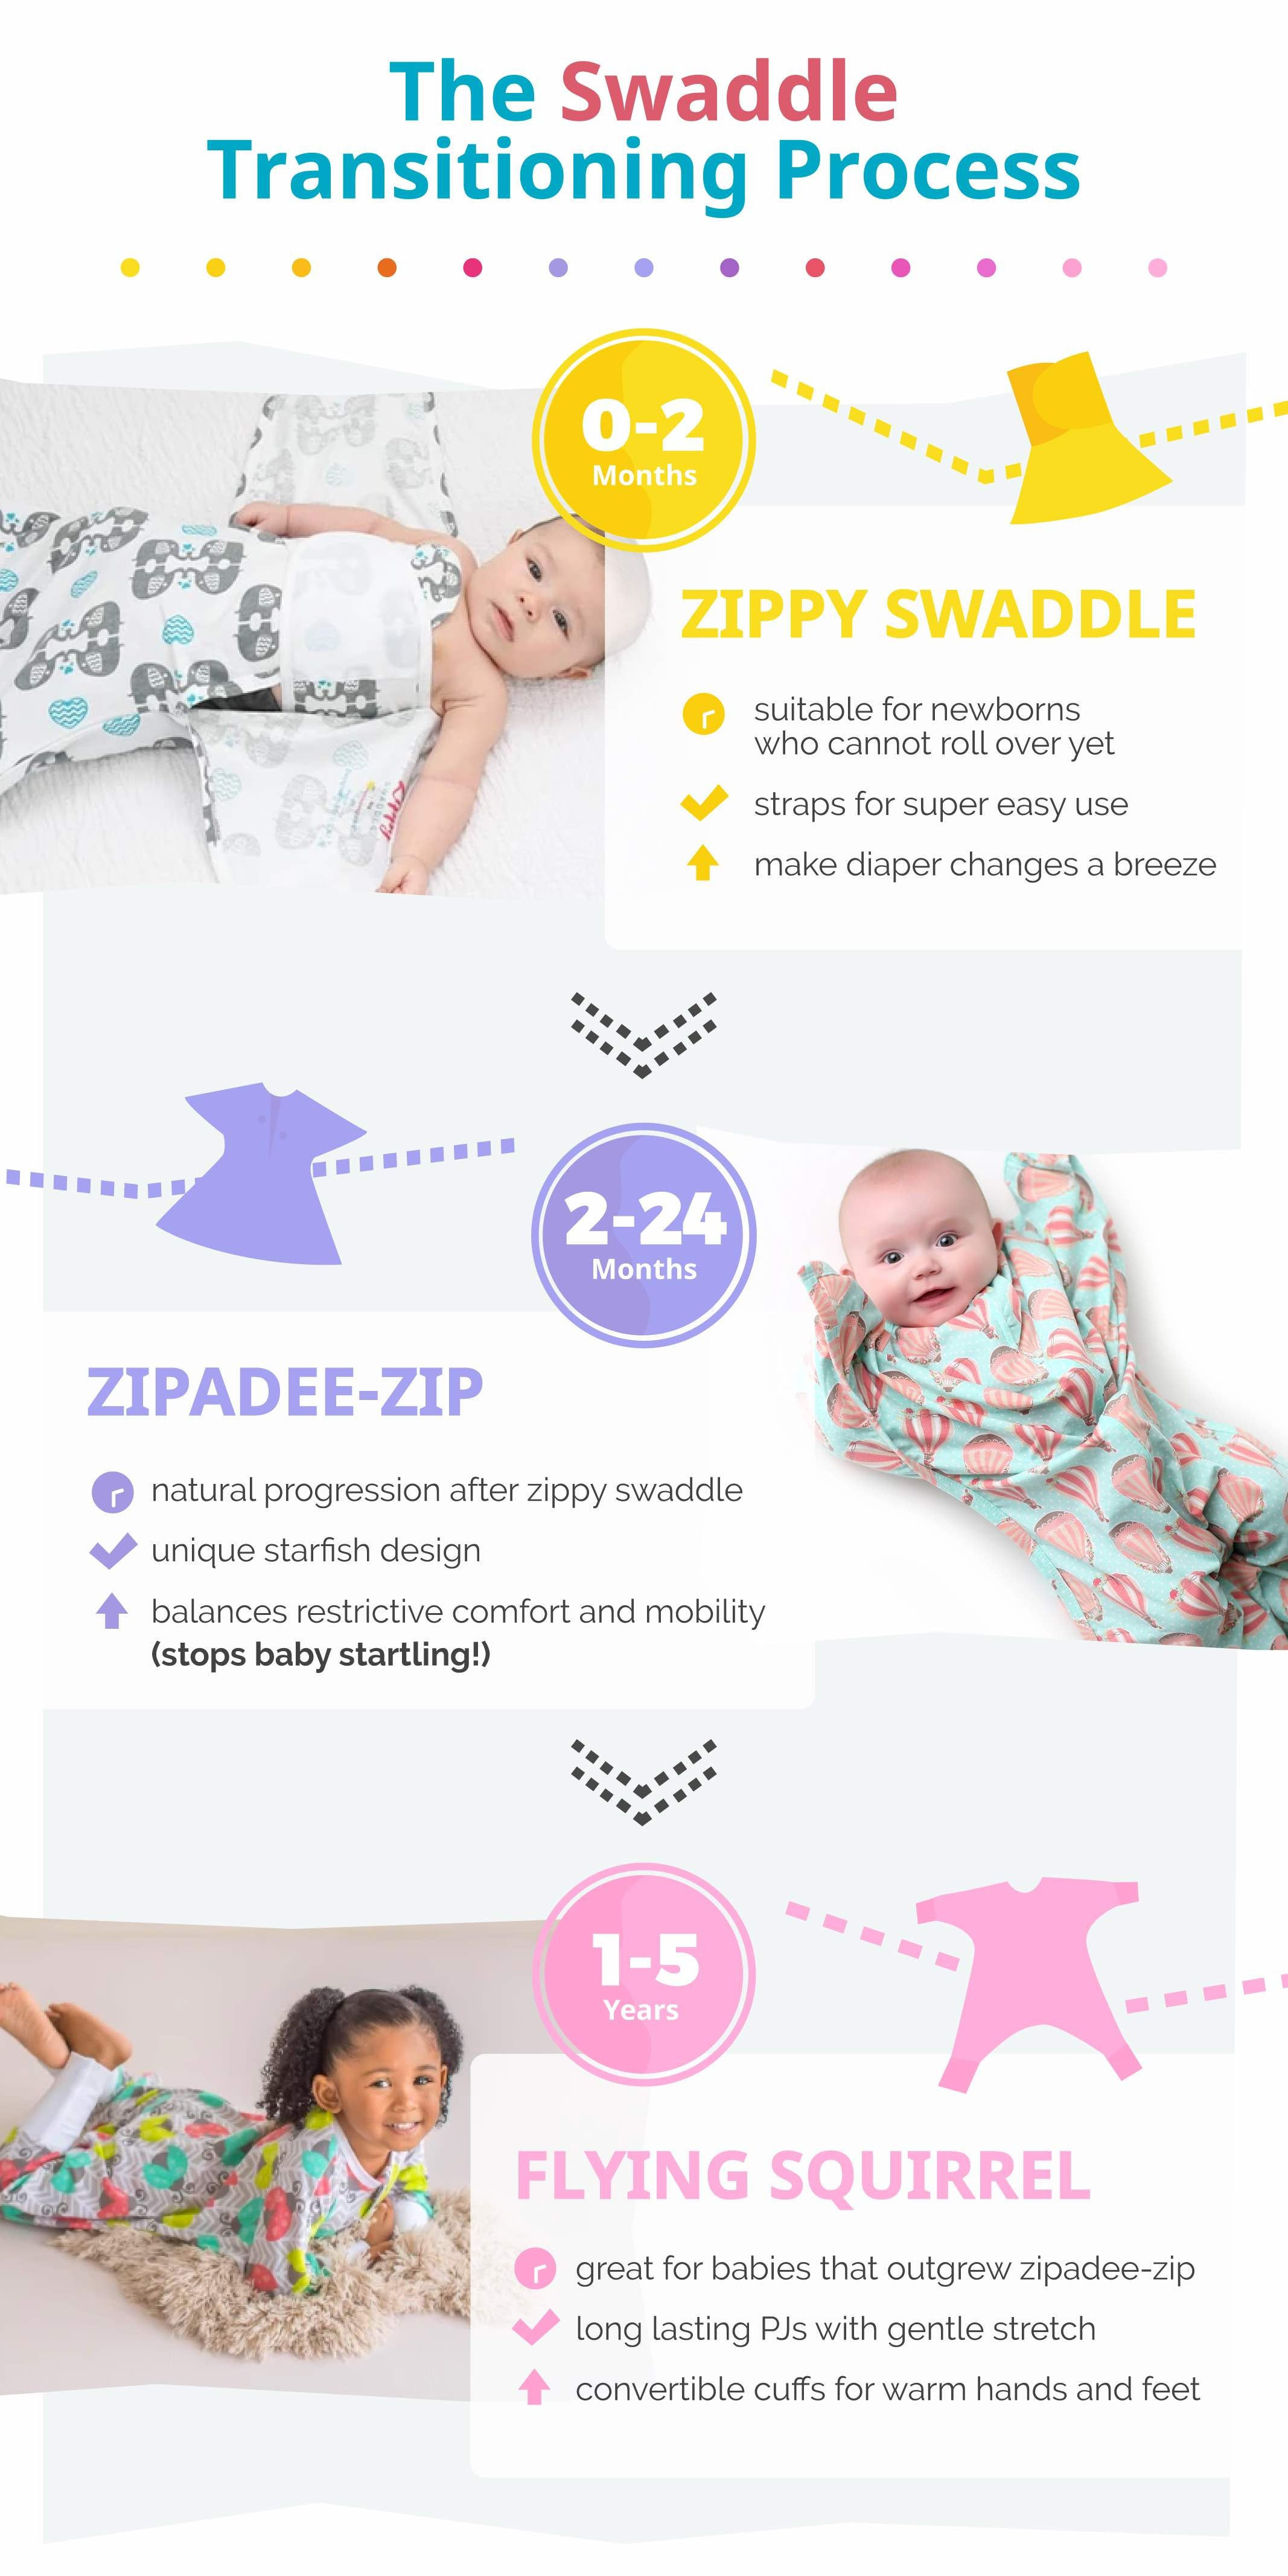 Swaddle transitioning products to prevent startle and moro reflex infographic.